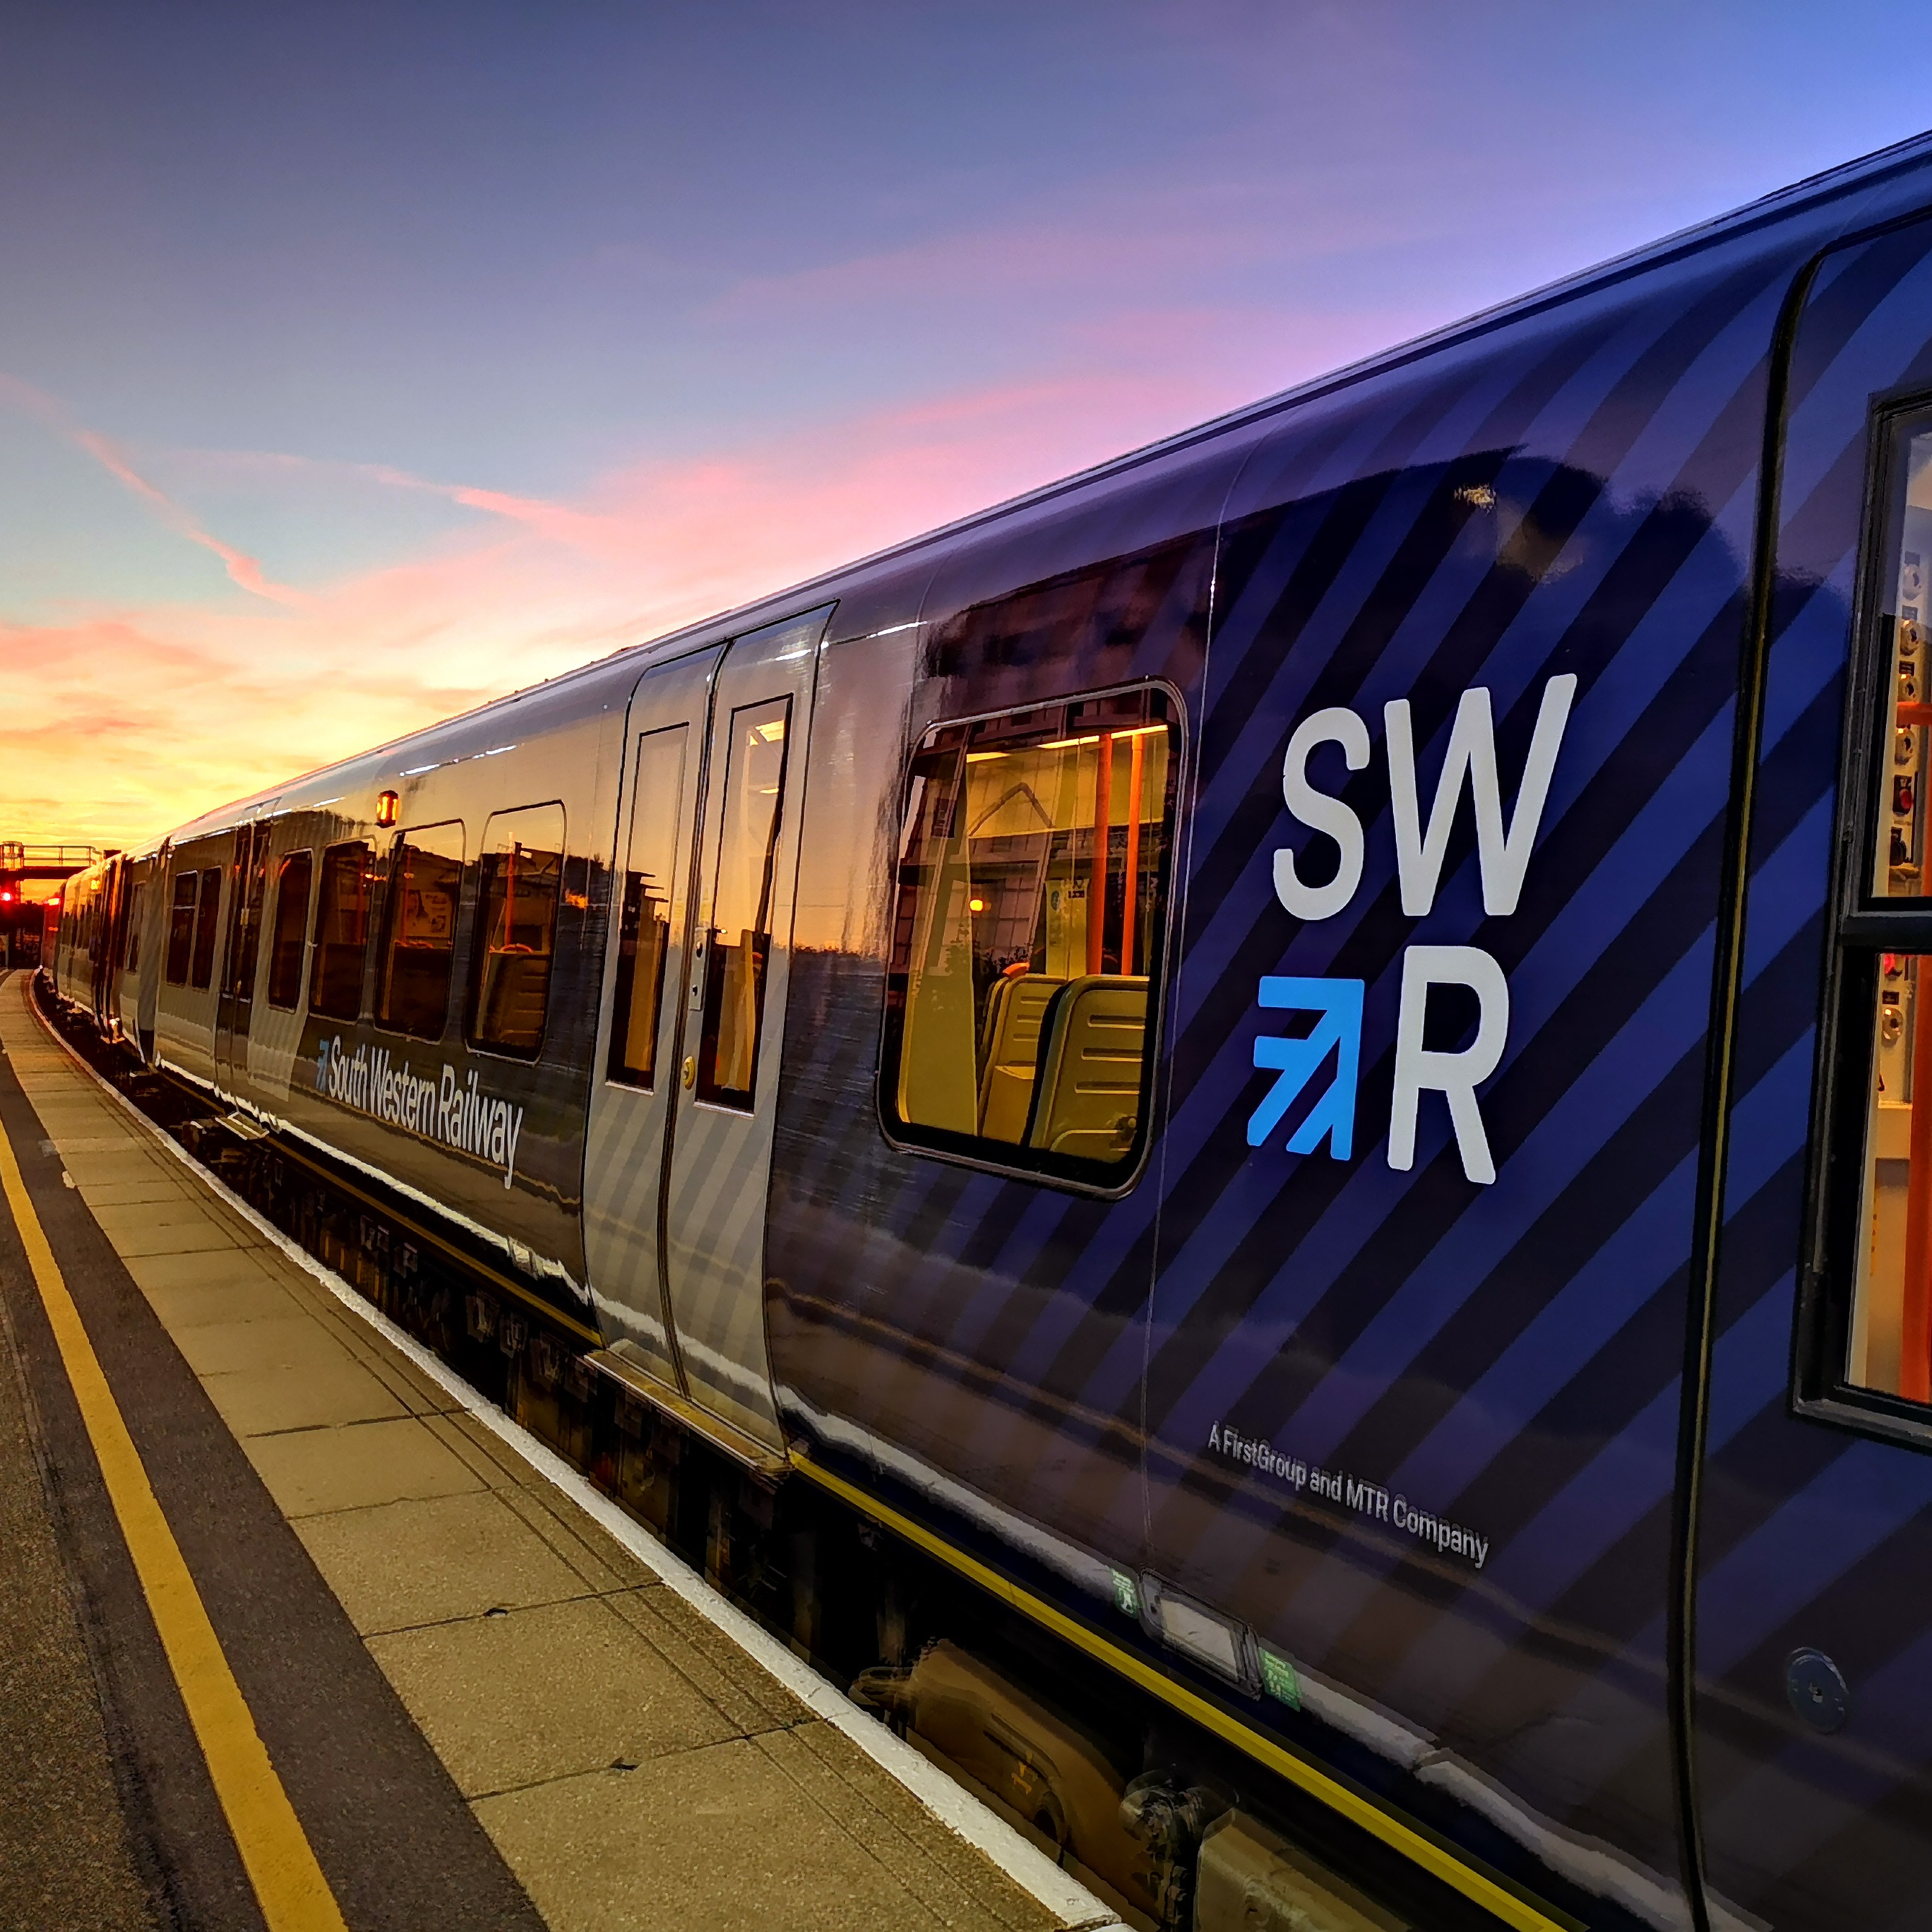 South Western Railway announces extra compensation for strike disruption